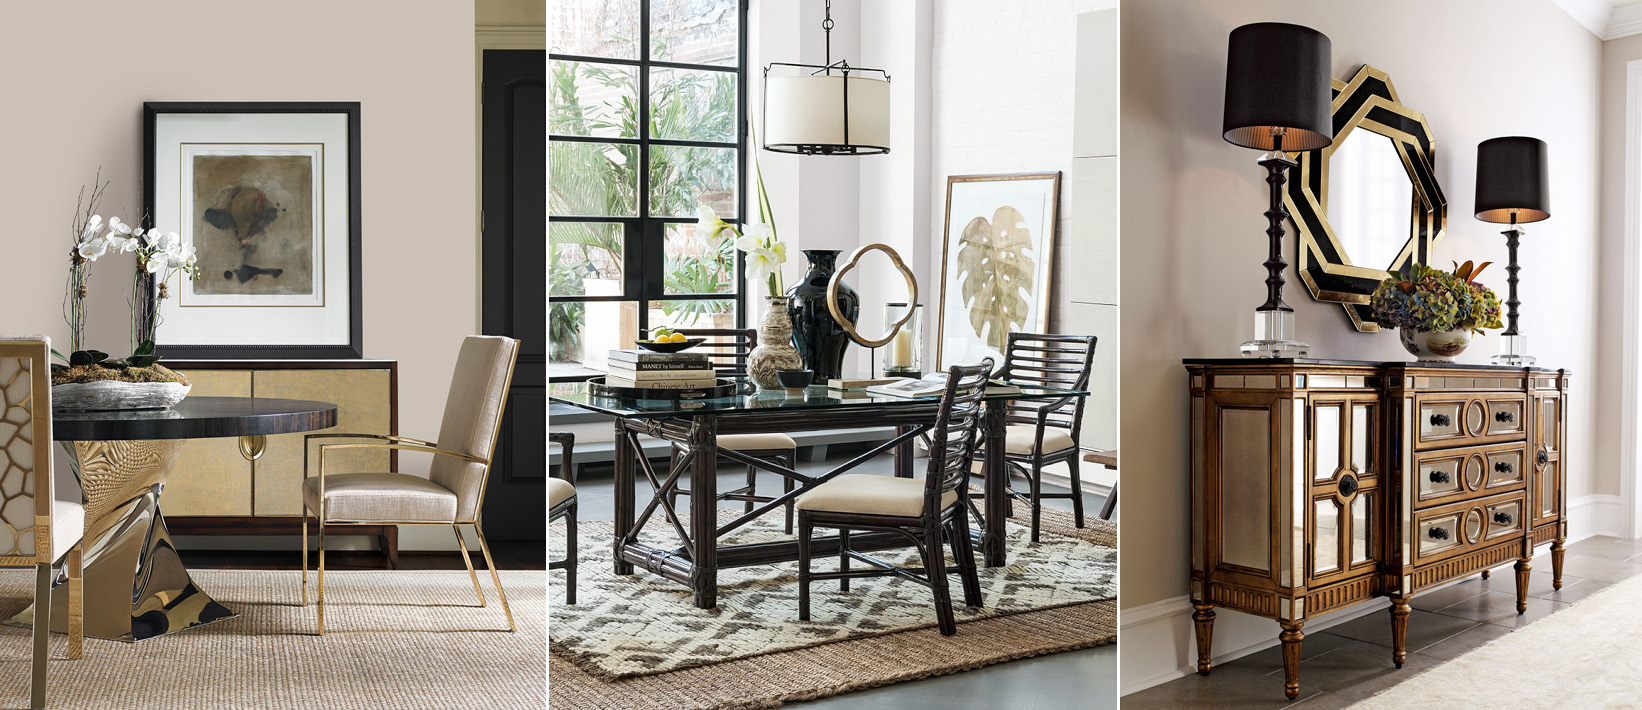 Dining Room Furniture | Dining Room Tables & Chairs Pertaining To Most Recent Rustic Brown Lorraine Extending Dining Tables (View 24 of 25)